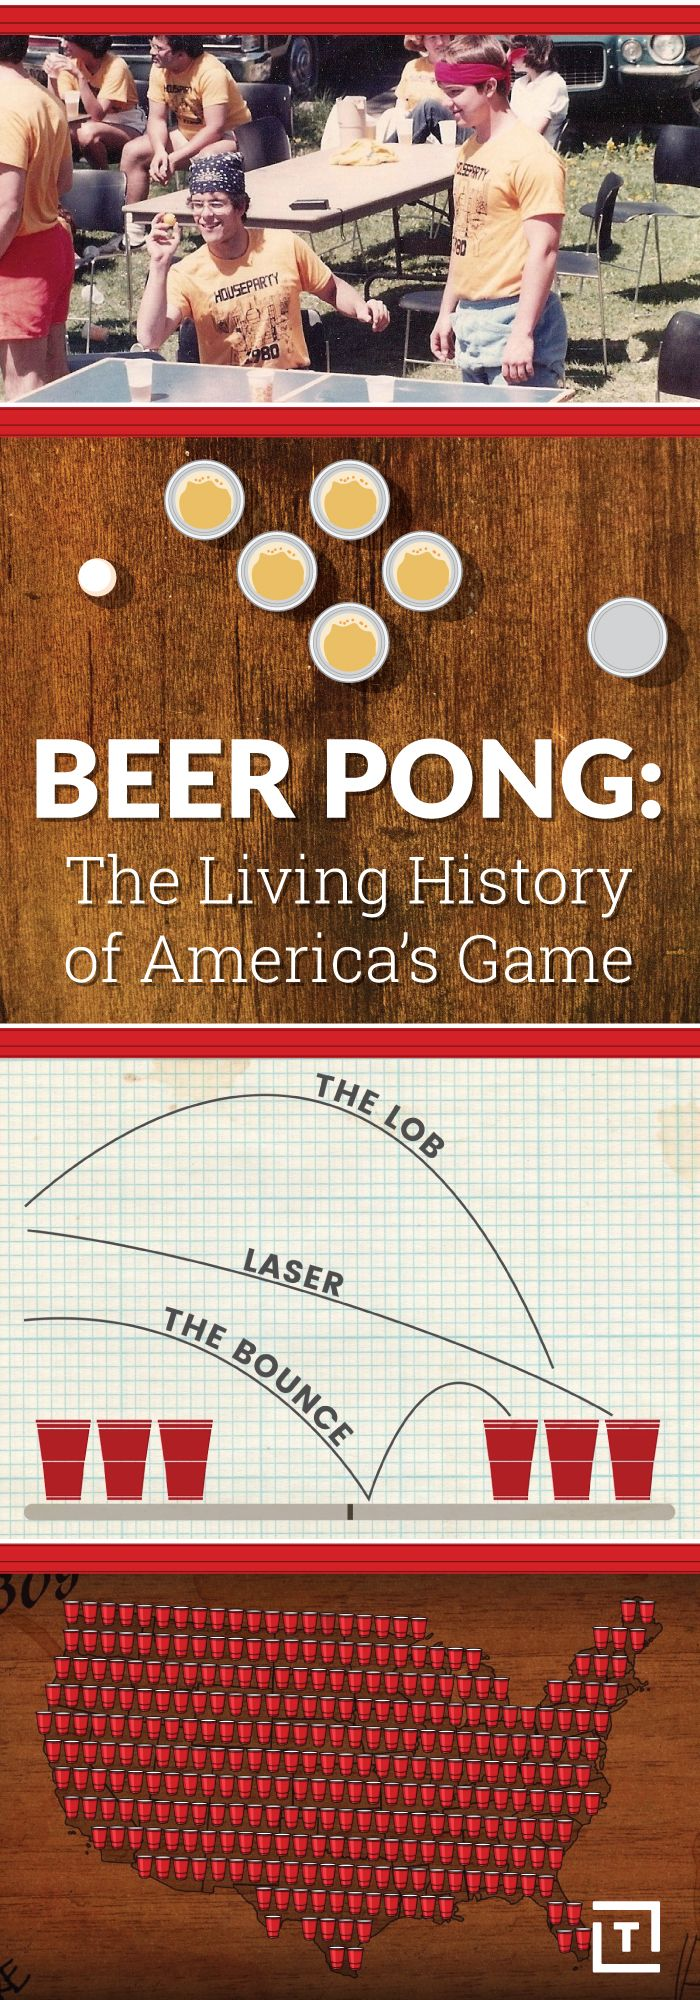 After interviewing alumni from the four corners of the US, combing the archives of the country's oldest student newspaper, and consulting several pong prophets who claim to see the game's future, we can now tell you, definitively, about its uncanny past. Behold: the history of beer pong.